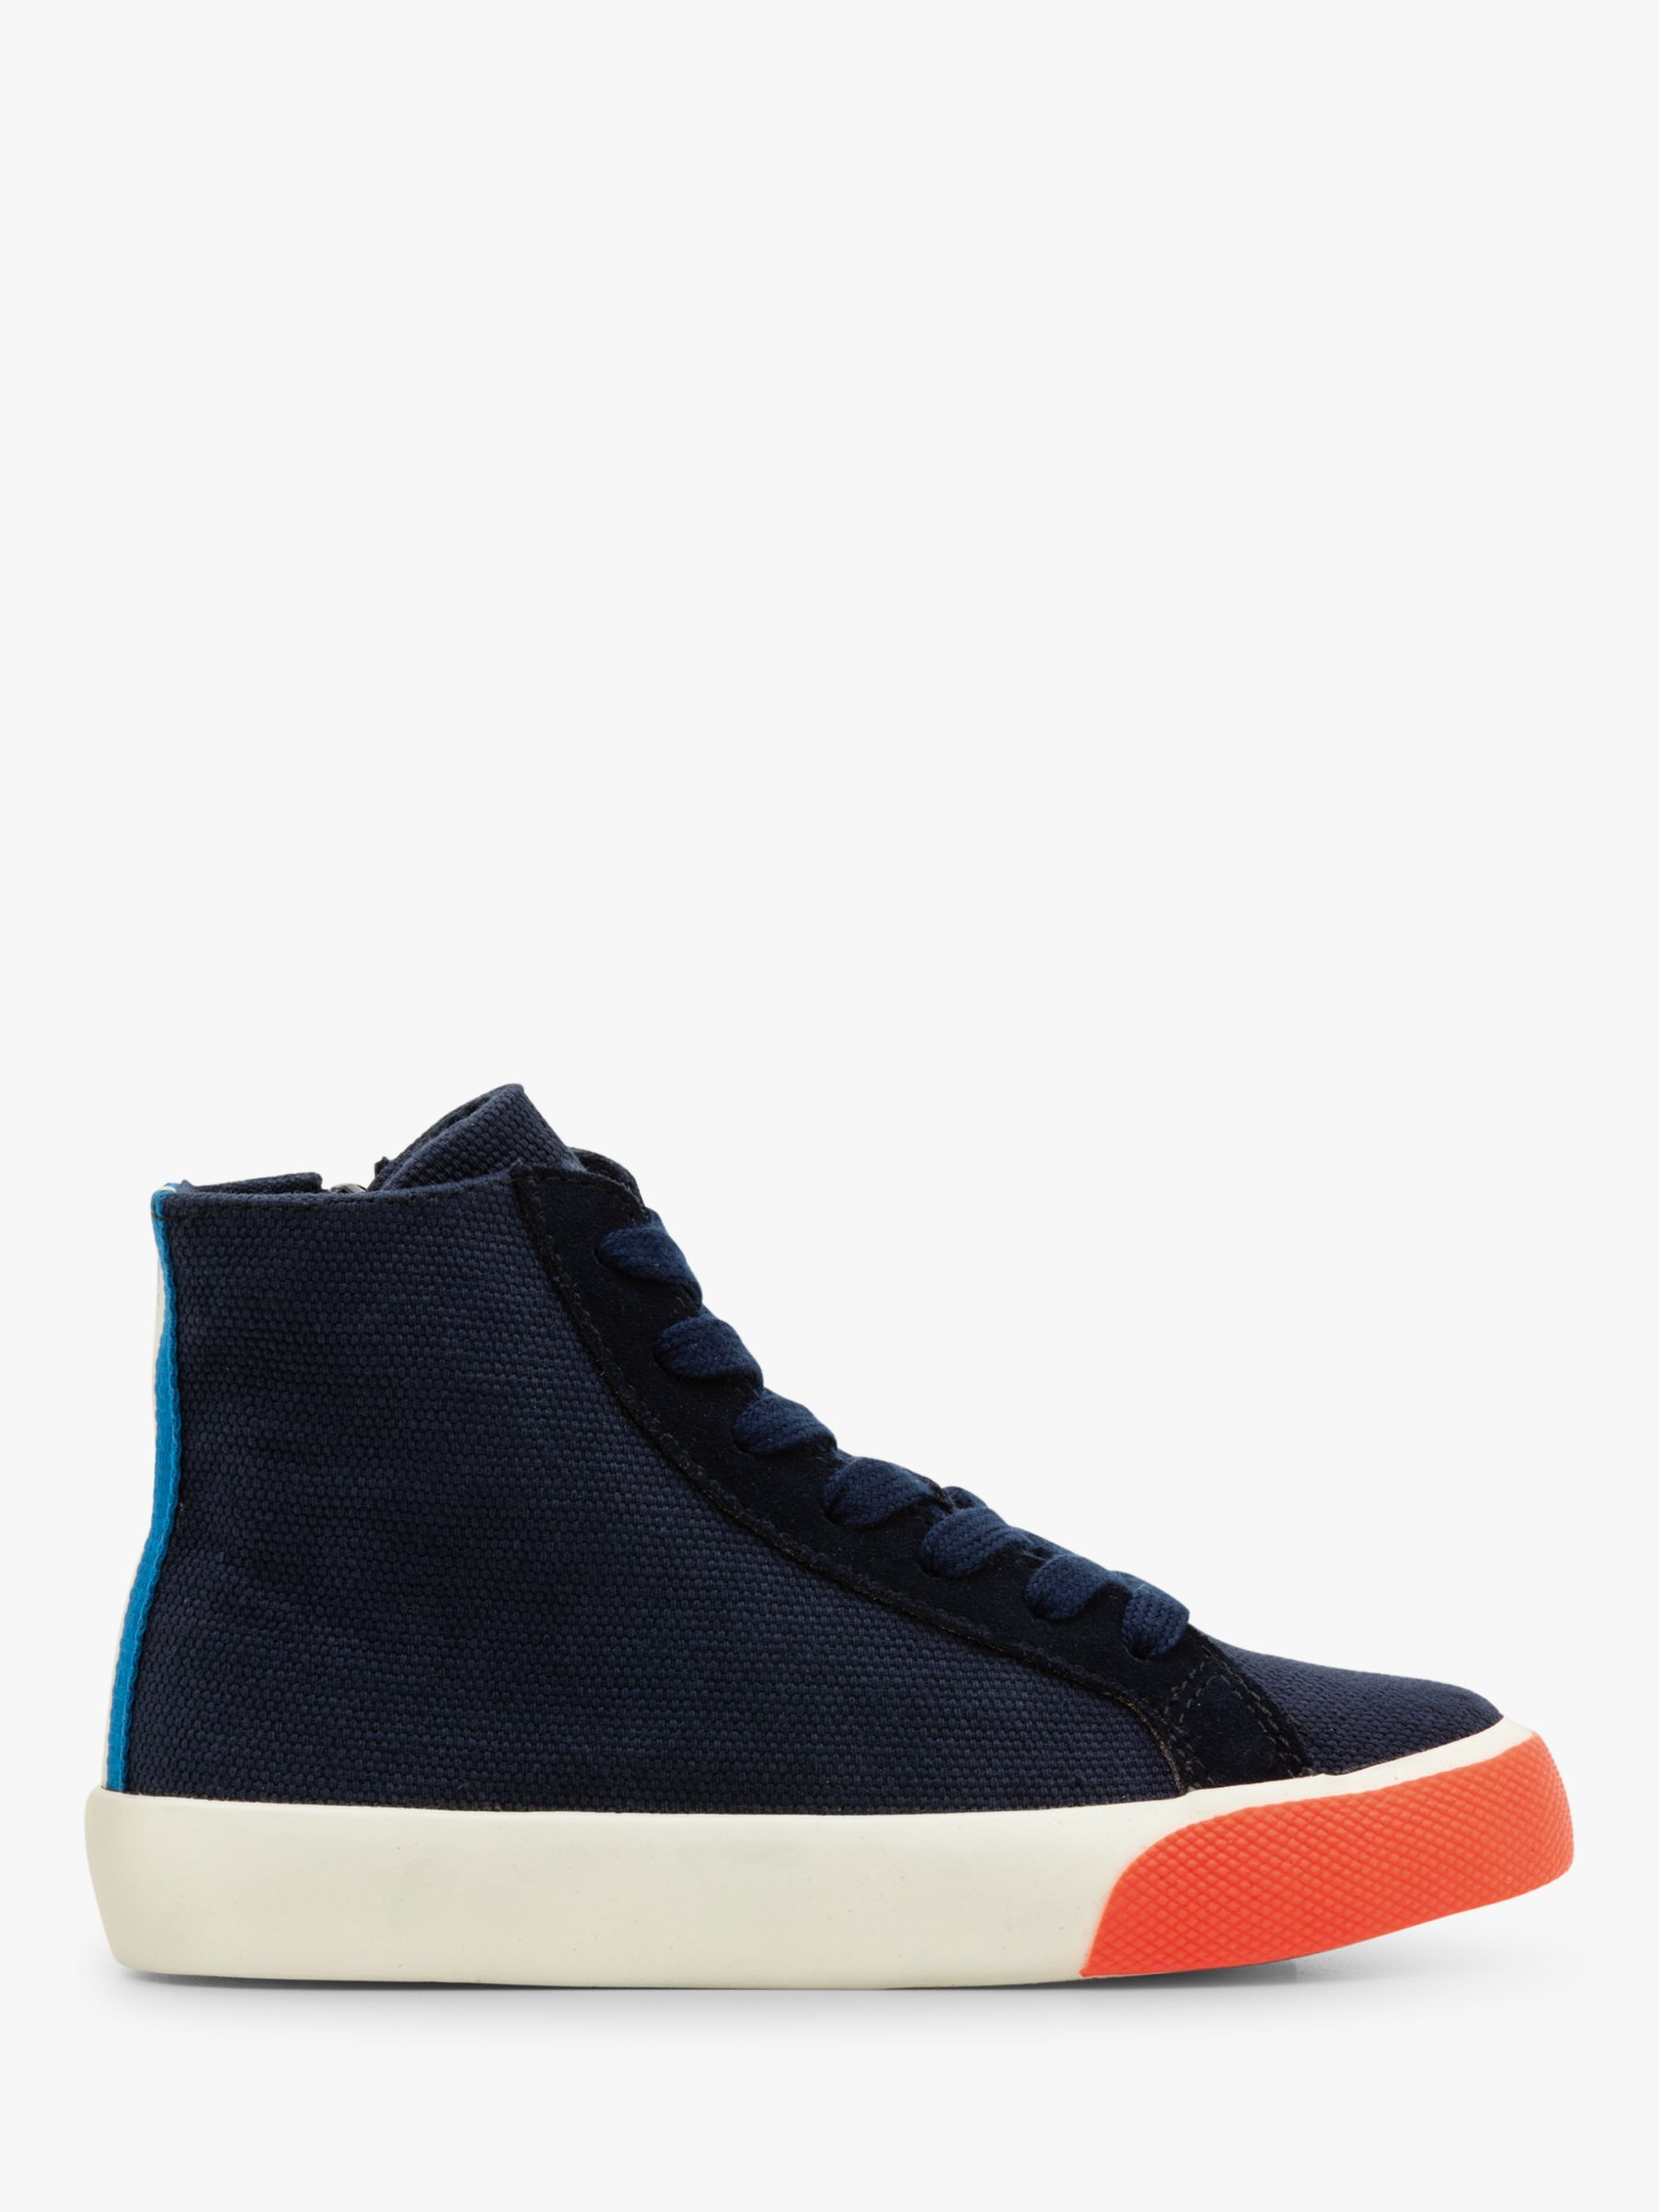 Mini Boden Mini Boden Contrast Canvas High Top Trainers, Navy Blue